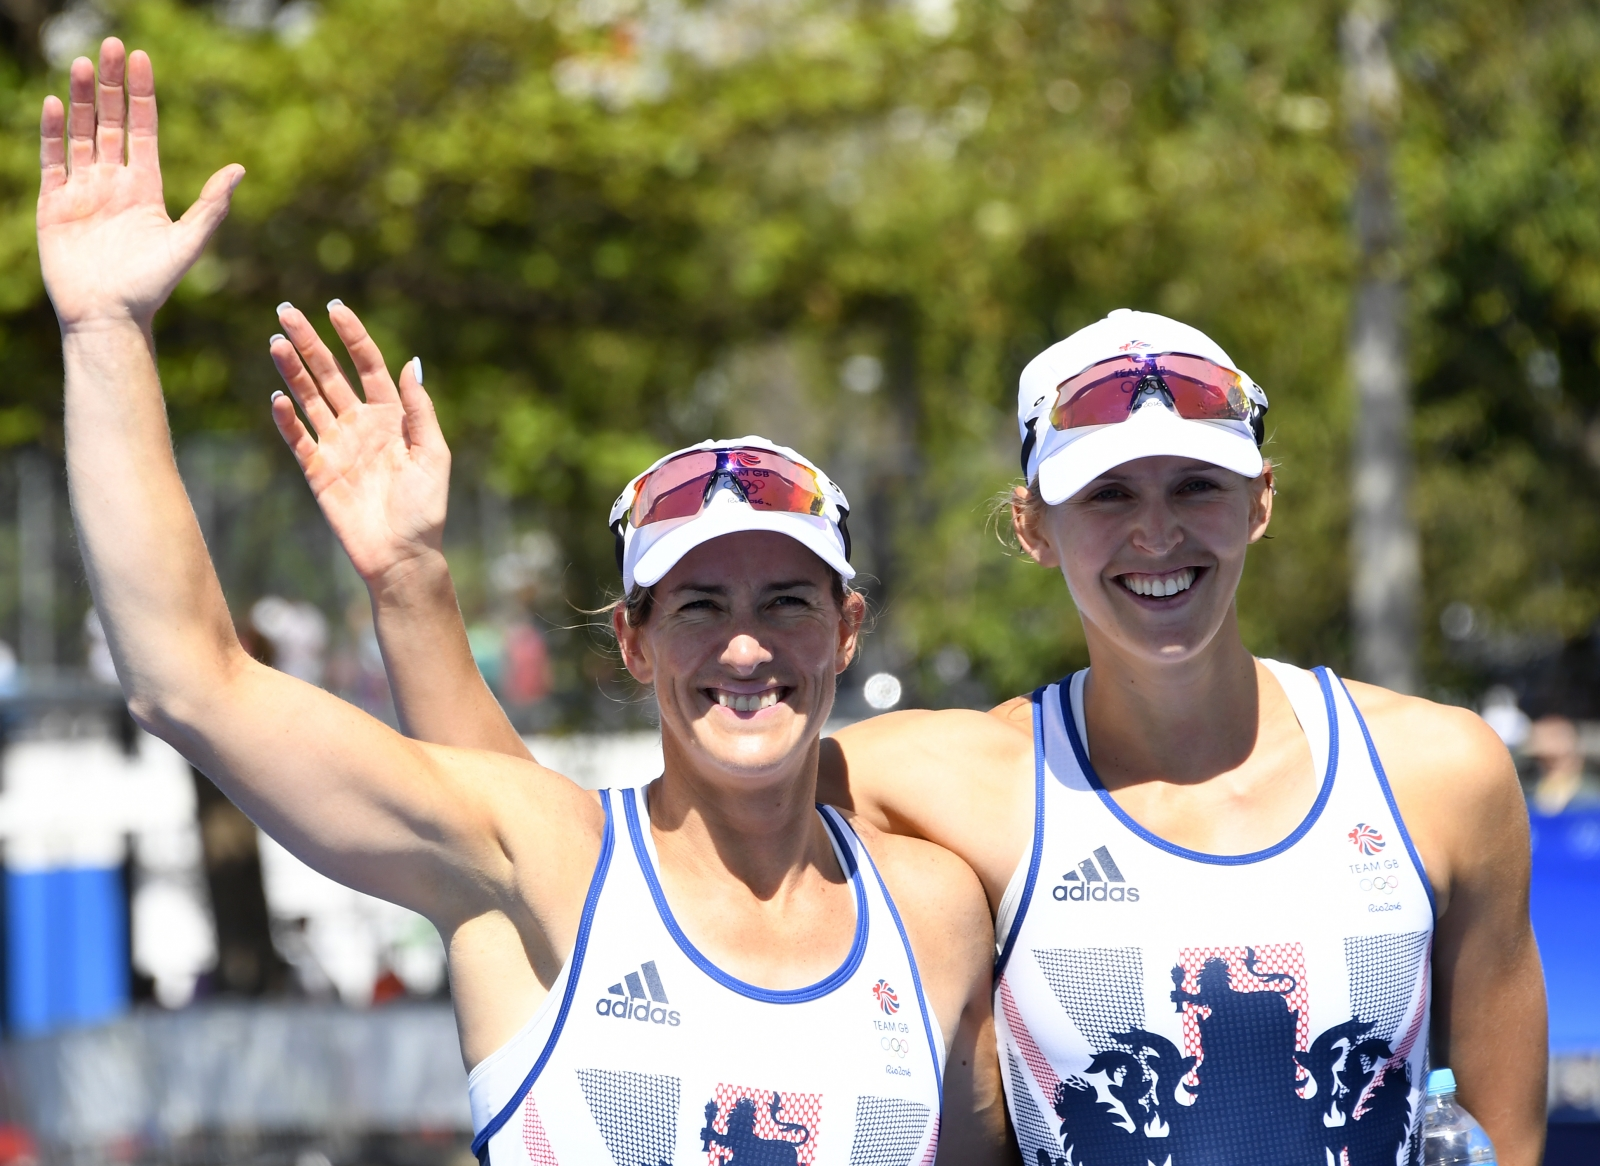 Rowing-Poles snatch win over Britain in women's double sculls final